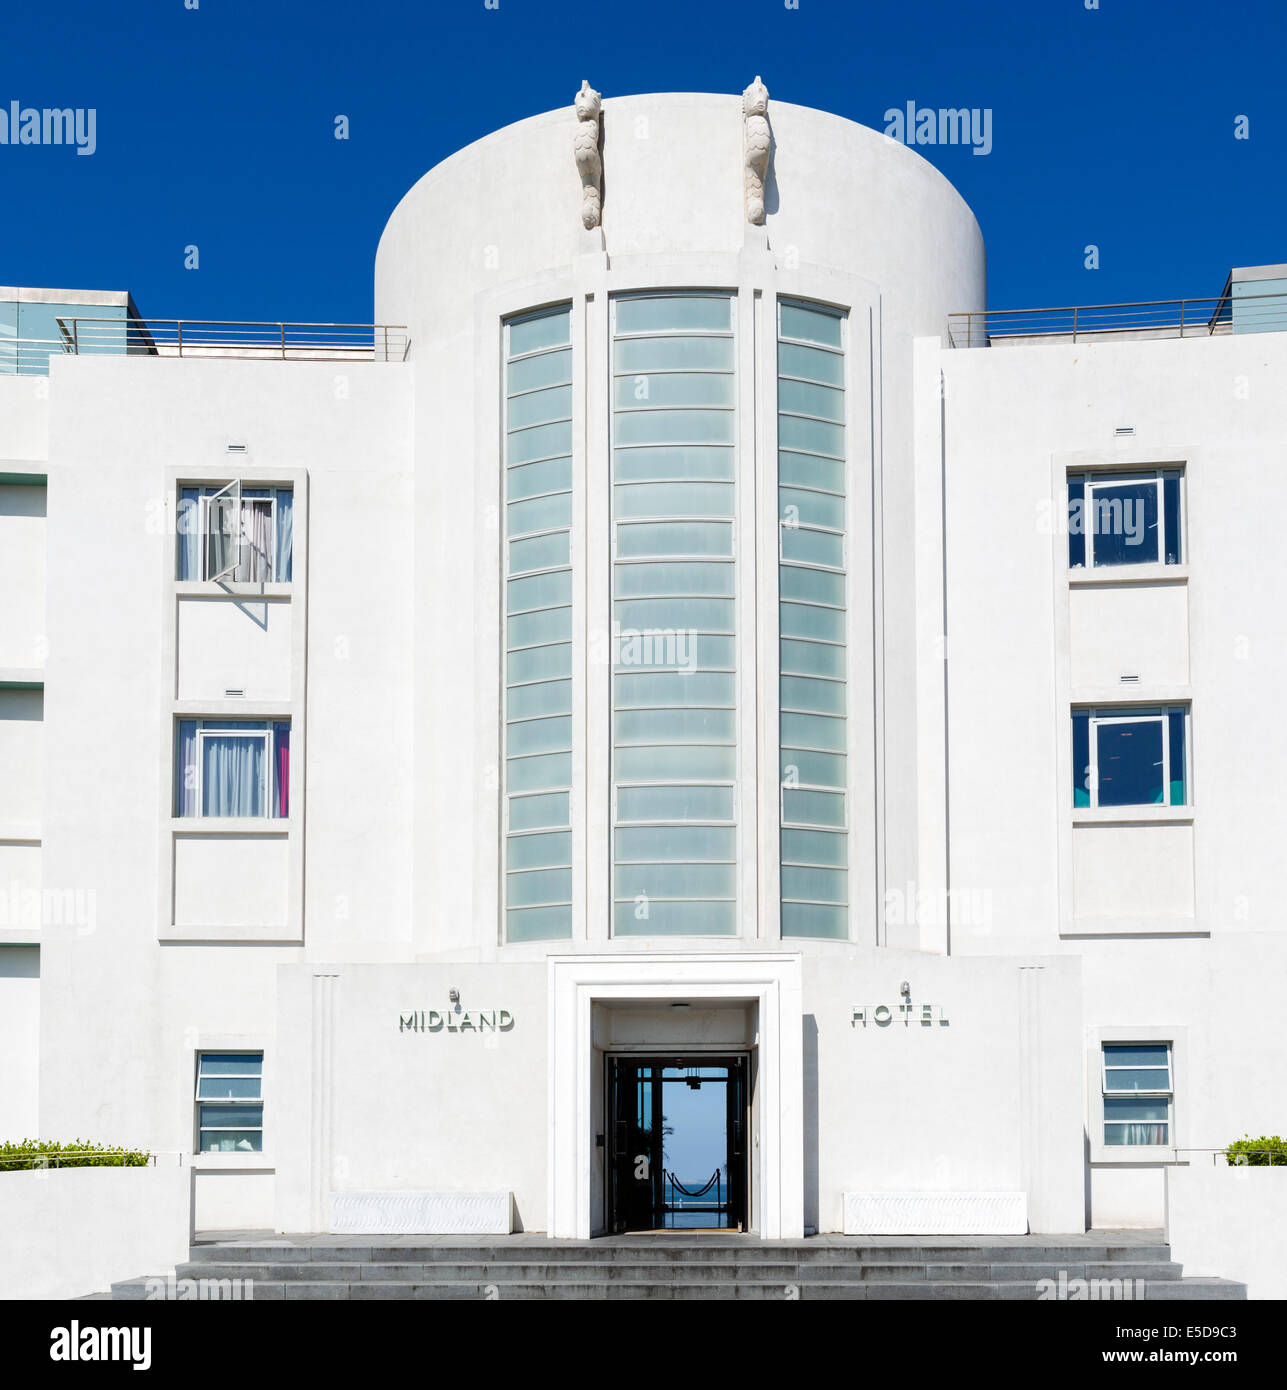 Entrance to the Art Deco Midland Hotel on the promenade in the seaside resort of Morecambe, Lancashire, UK - Stock Image